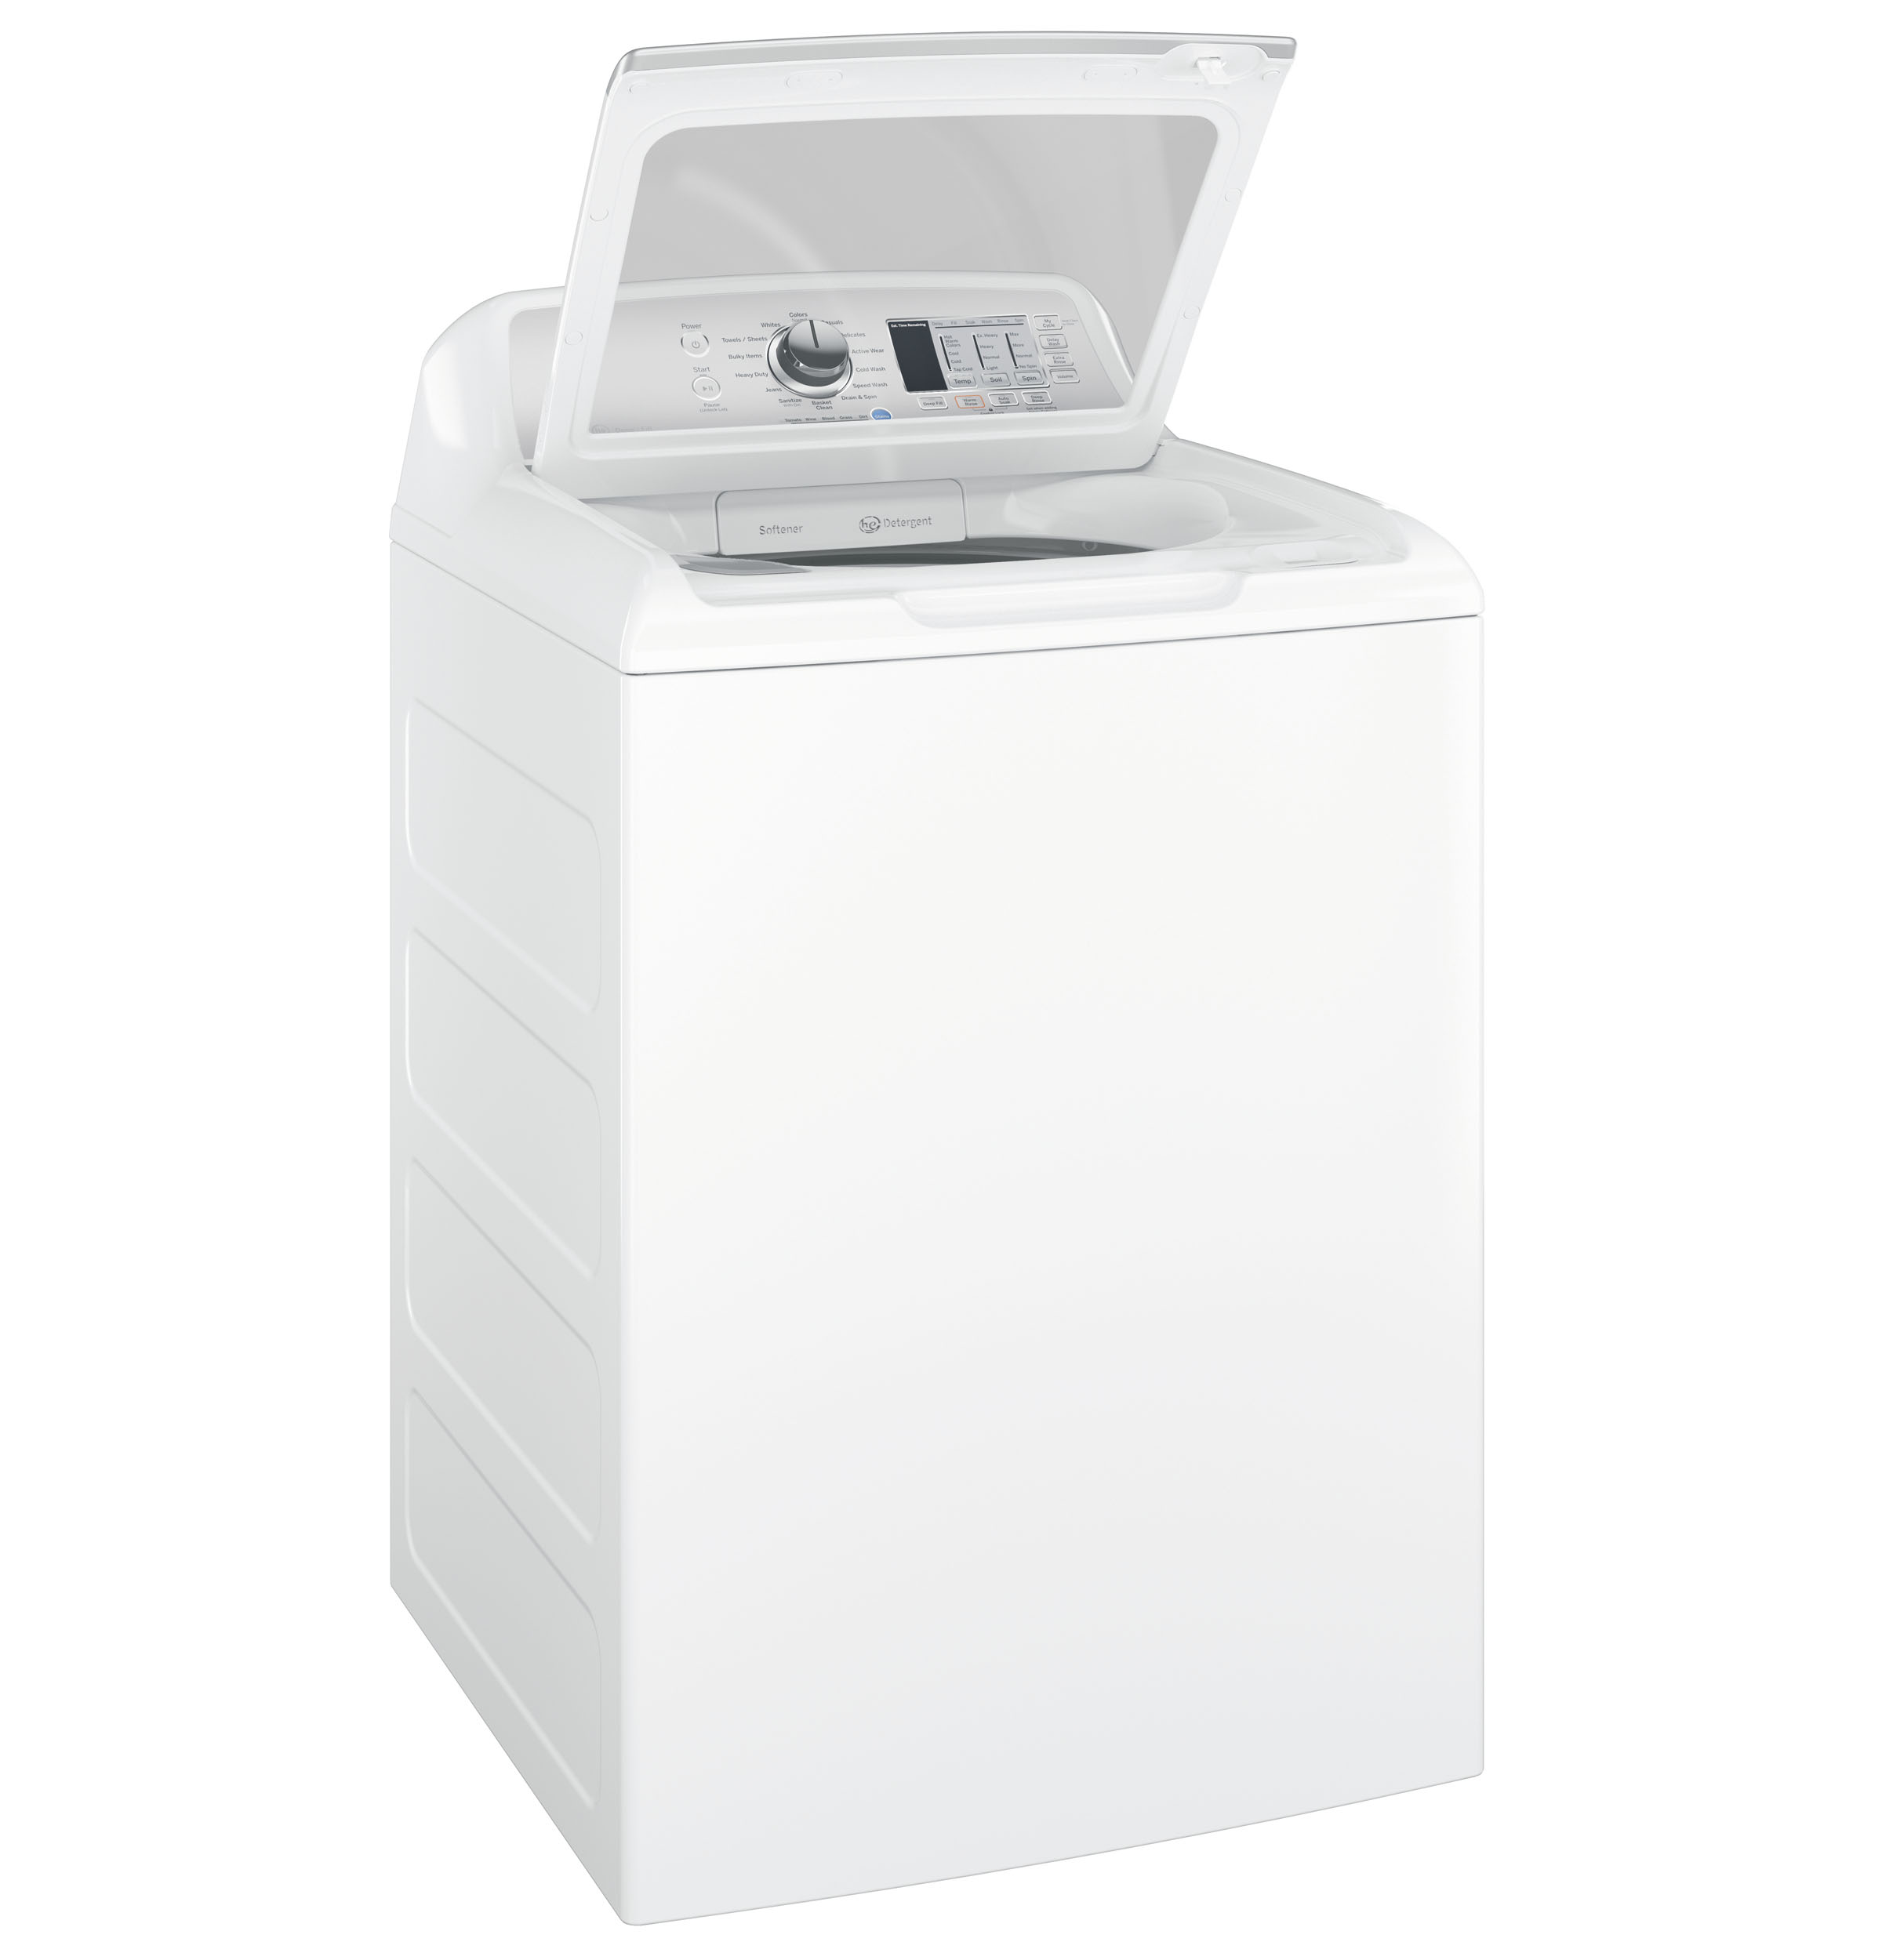 Model: GTW685BSLWS | GE® 4.5  cu. ft. Capacity Washer with Stainless Steel Basket